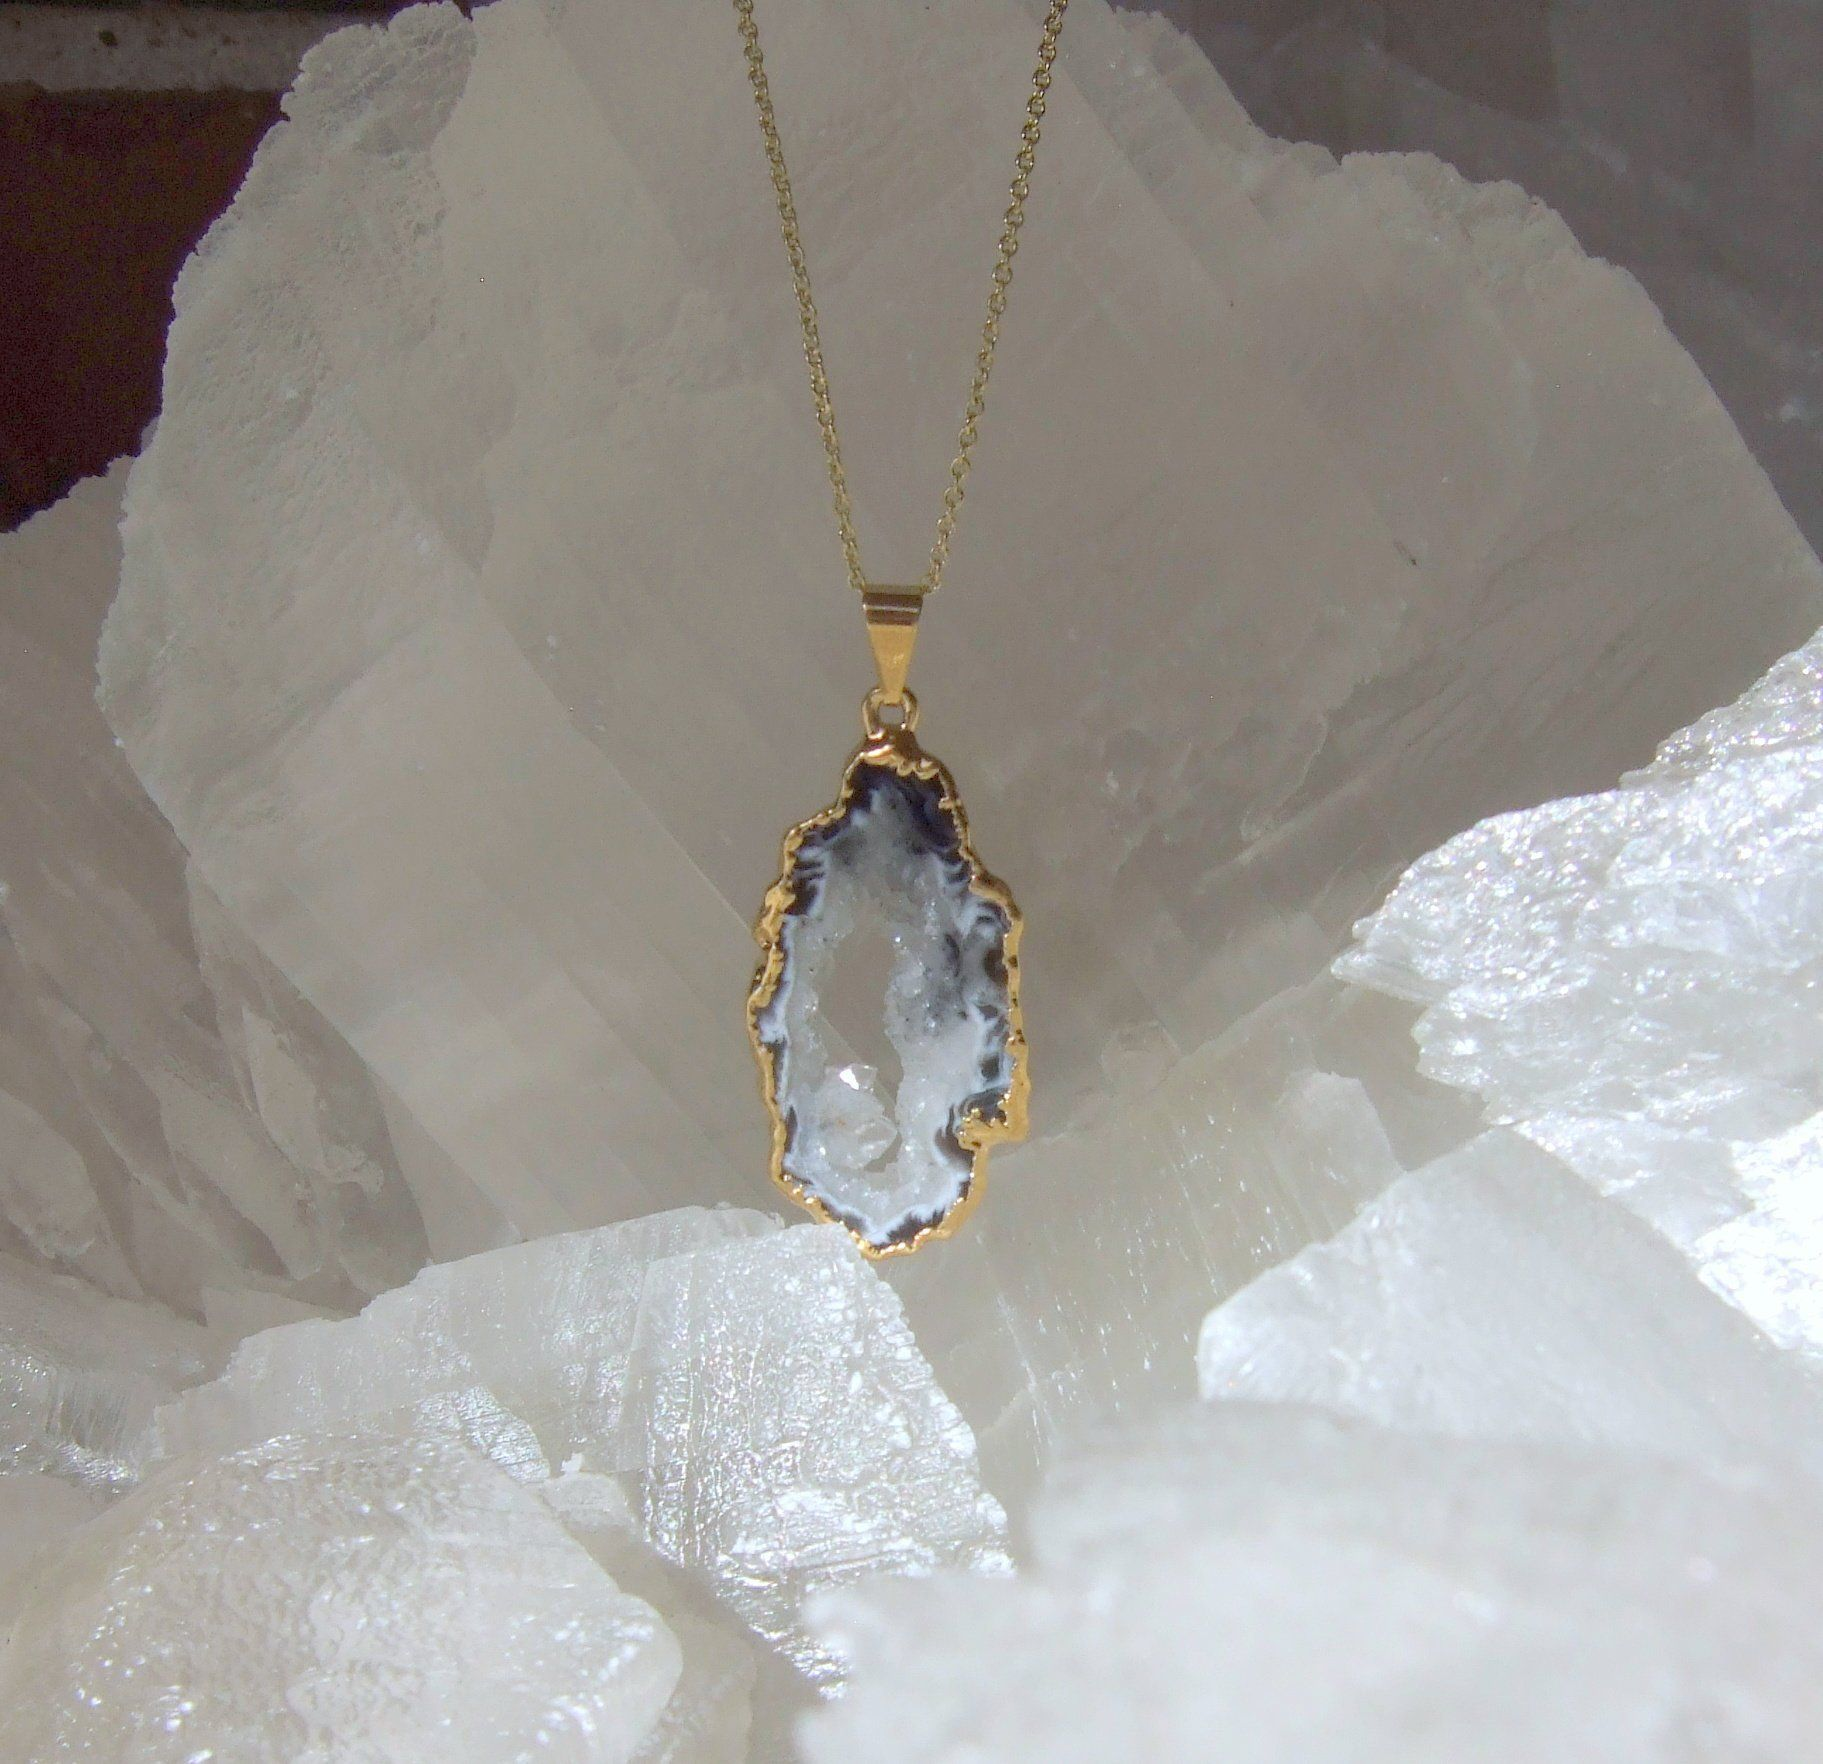 Gold Plated Genuine Mint Agate Crystal Necklace 28 Gold Chain Genuine Mint Agate Crystal Pendant Saffron Aspen Jewelry Necklaces In 2020